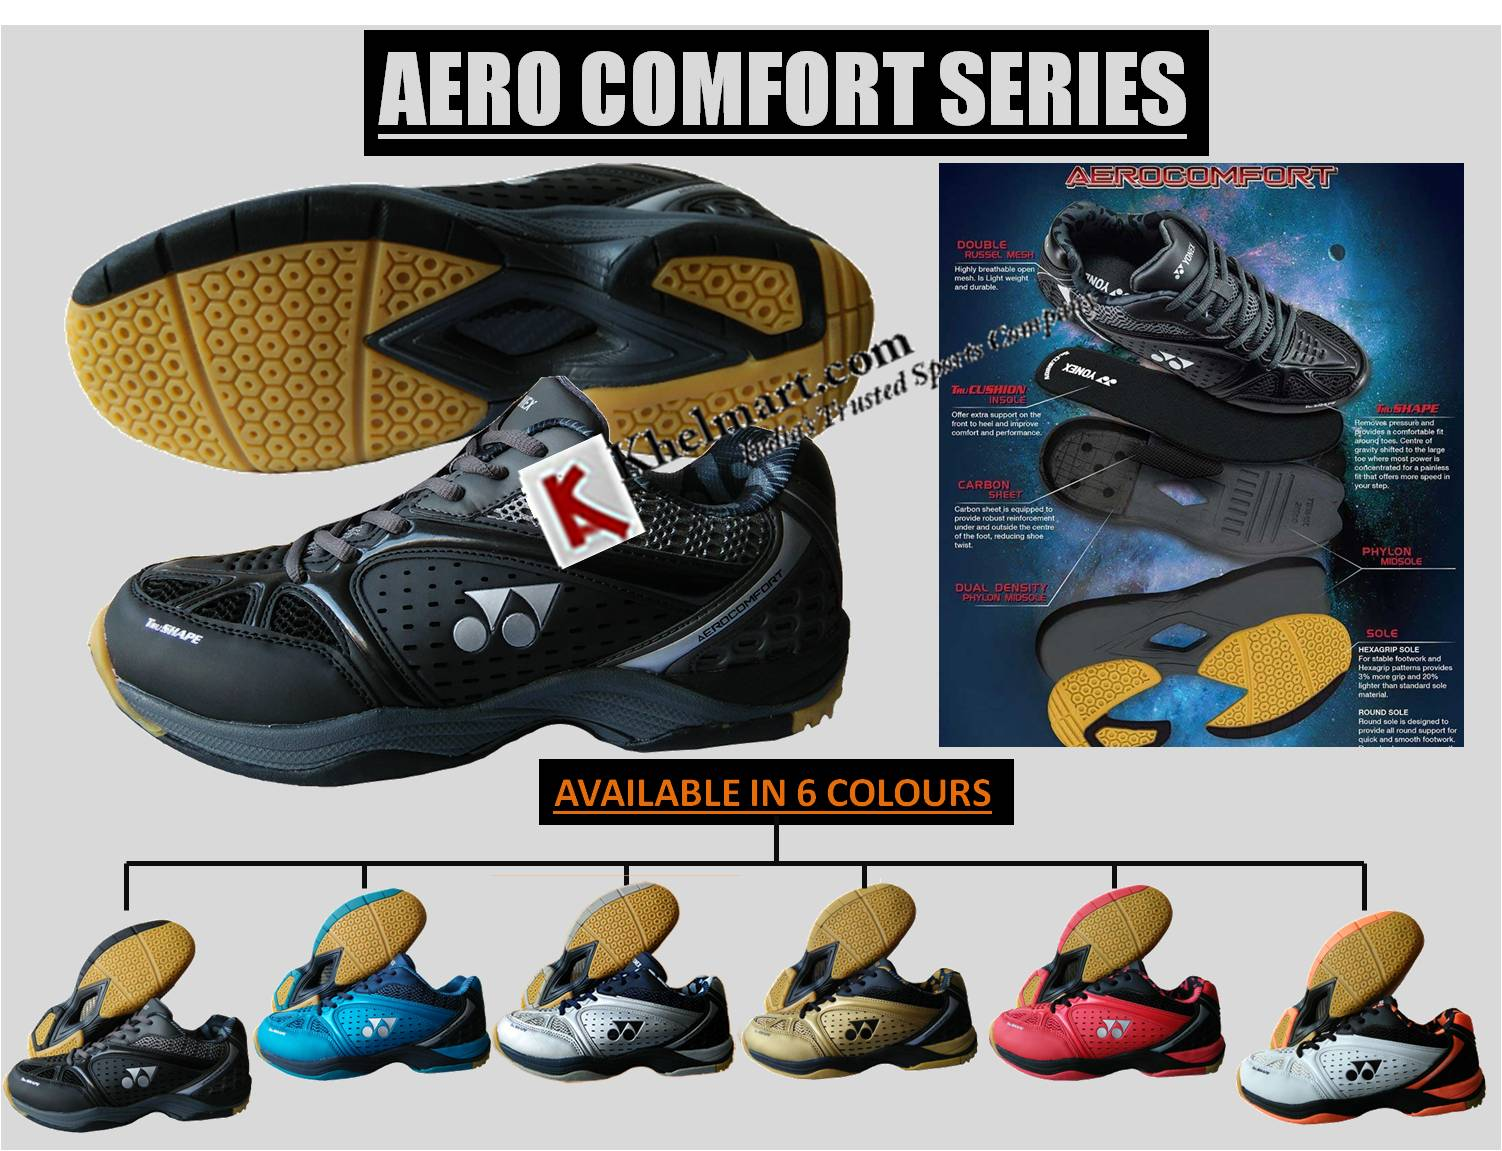 YONEX_AERO_COMFORT_BADMINTON_SHOES_SERIES_1.jpg